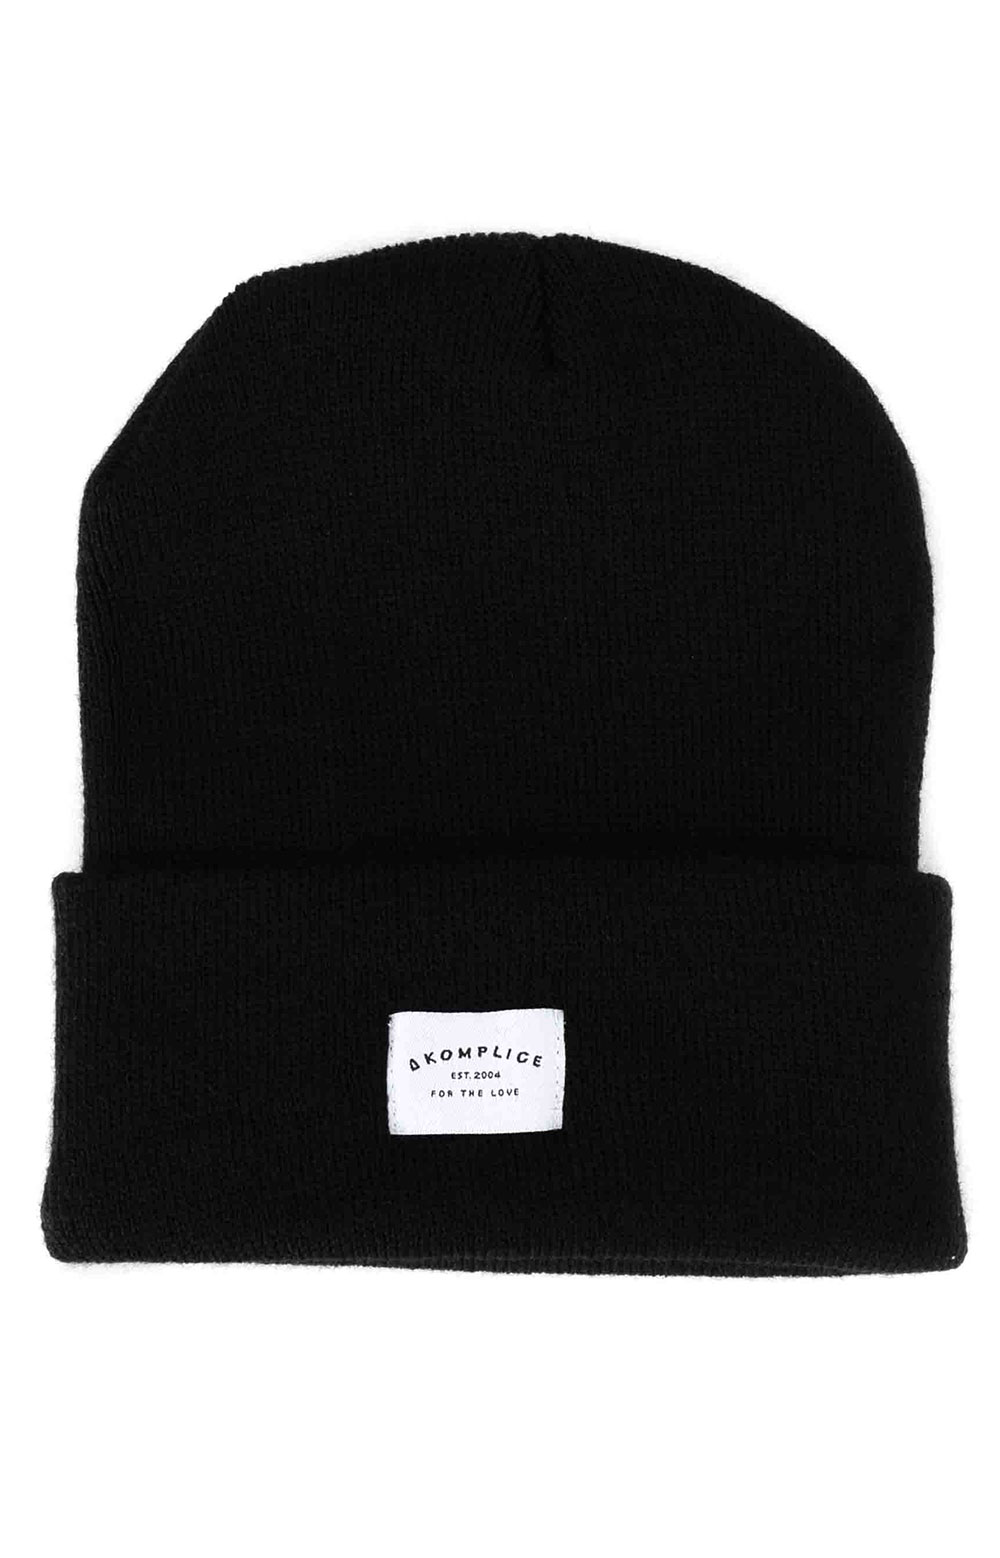 Akomplice Label Beanie - Black